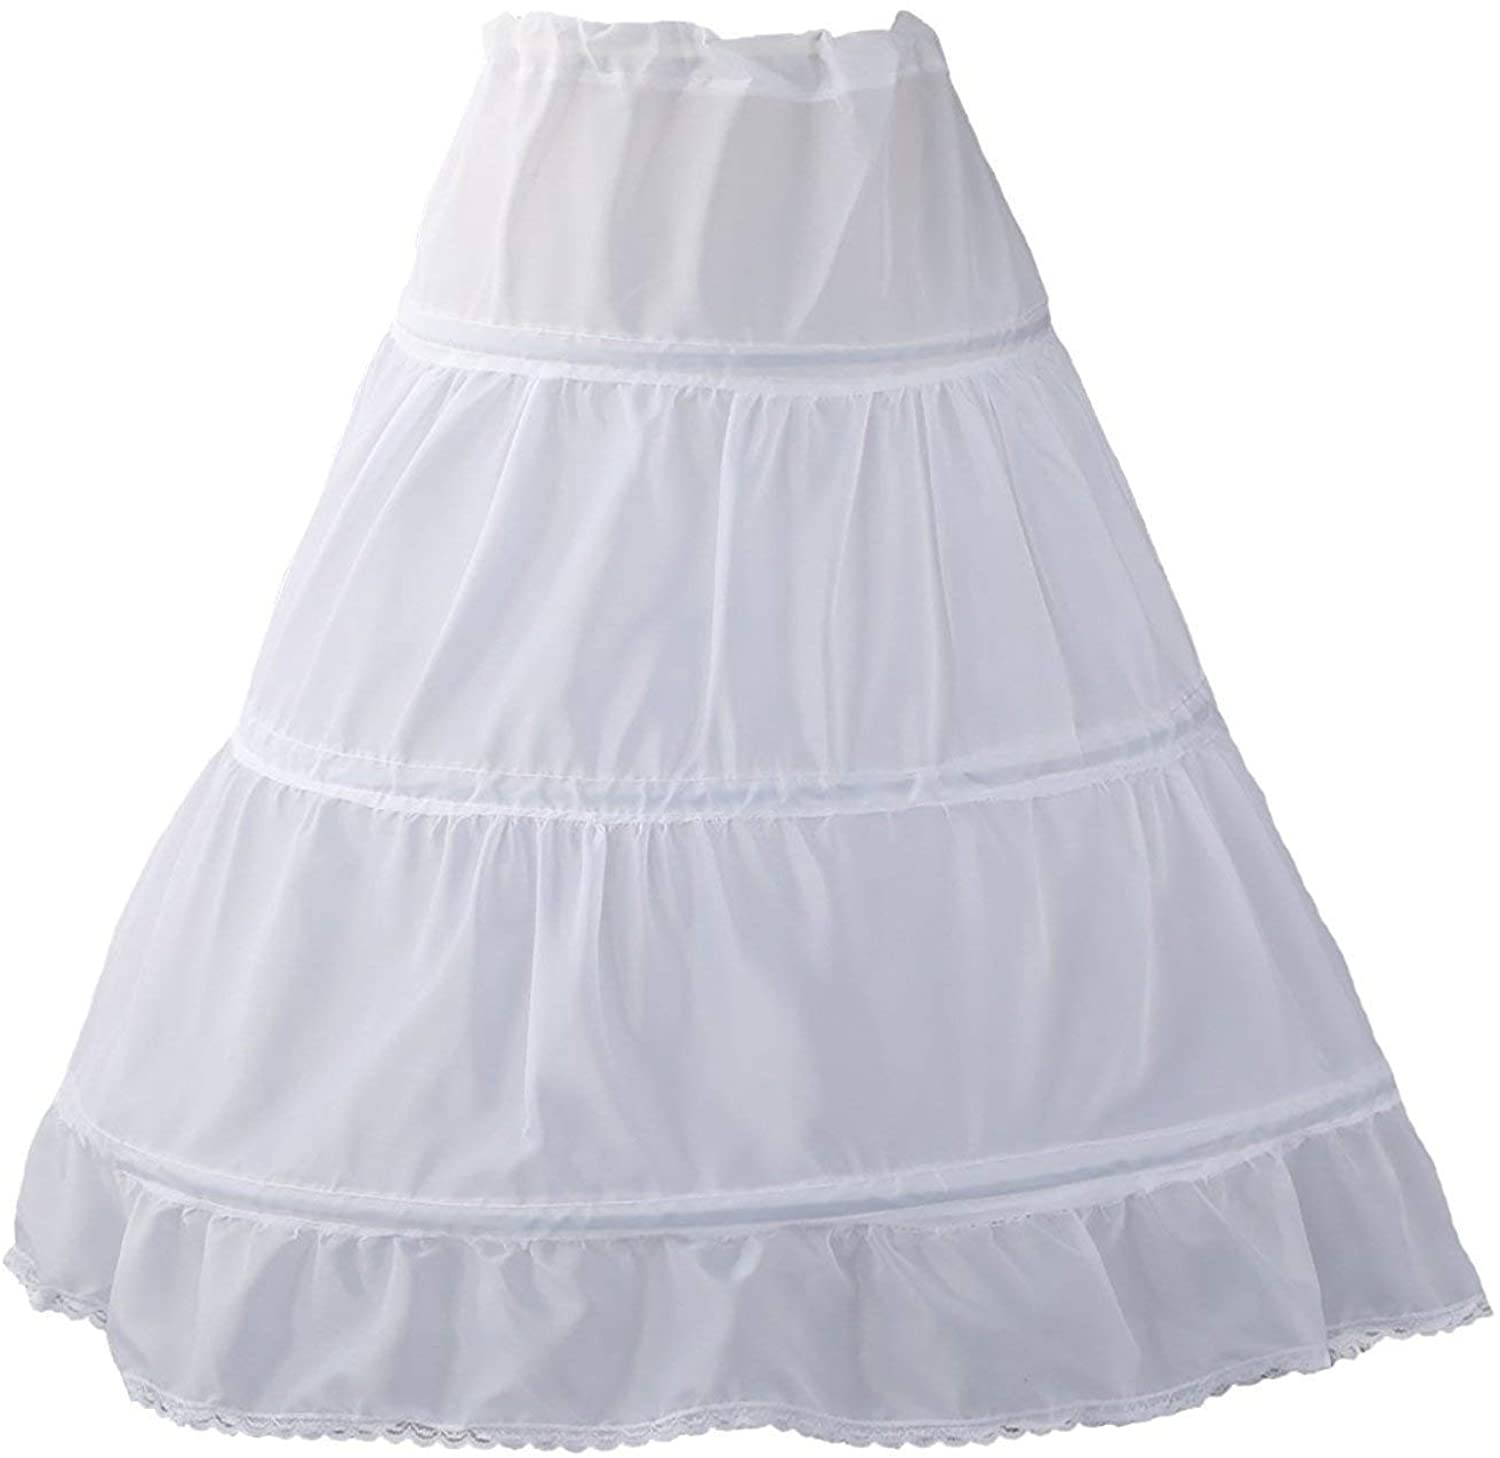 WDE Puffy Crinoline Petticoat Skirt for Girls 3 Hoops Slip for Pageant Dress Gown